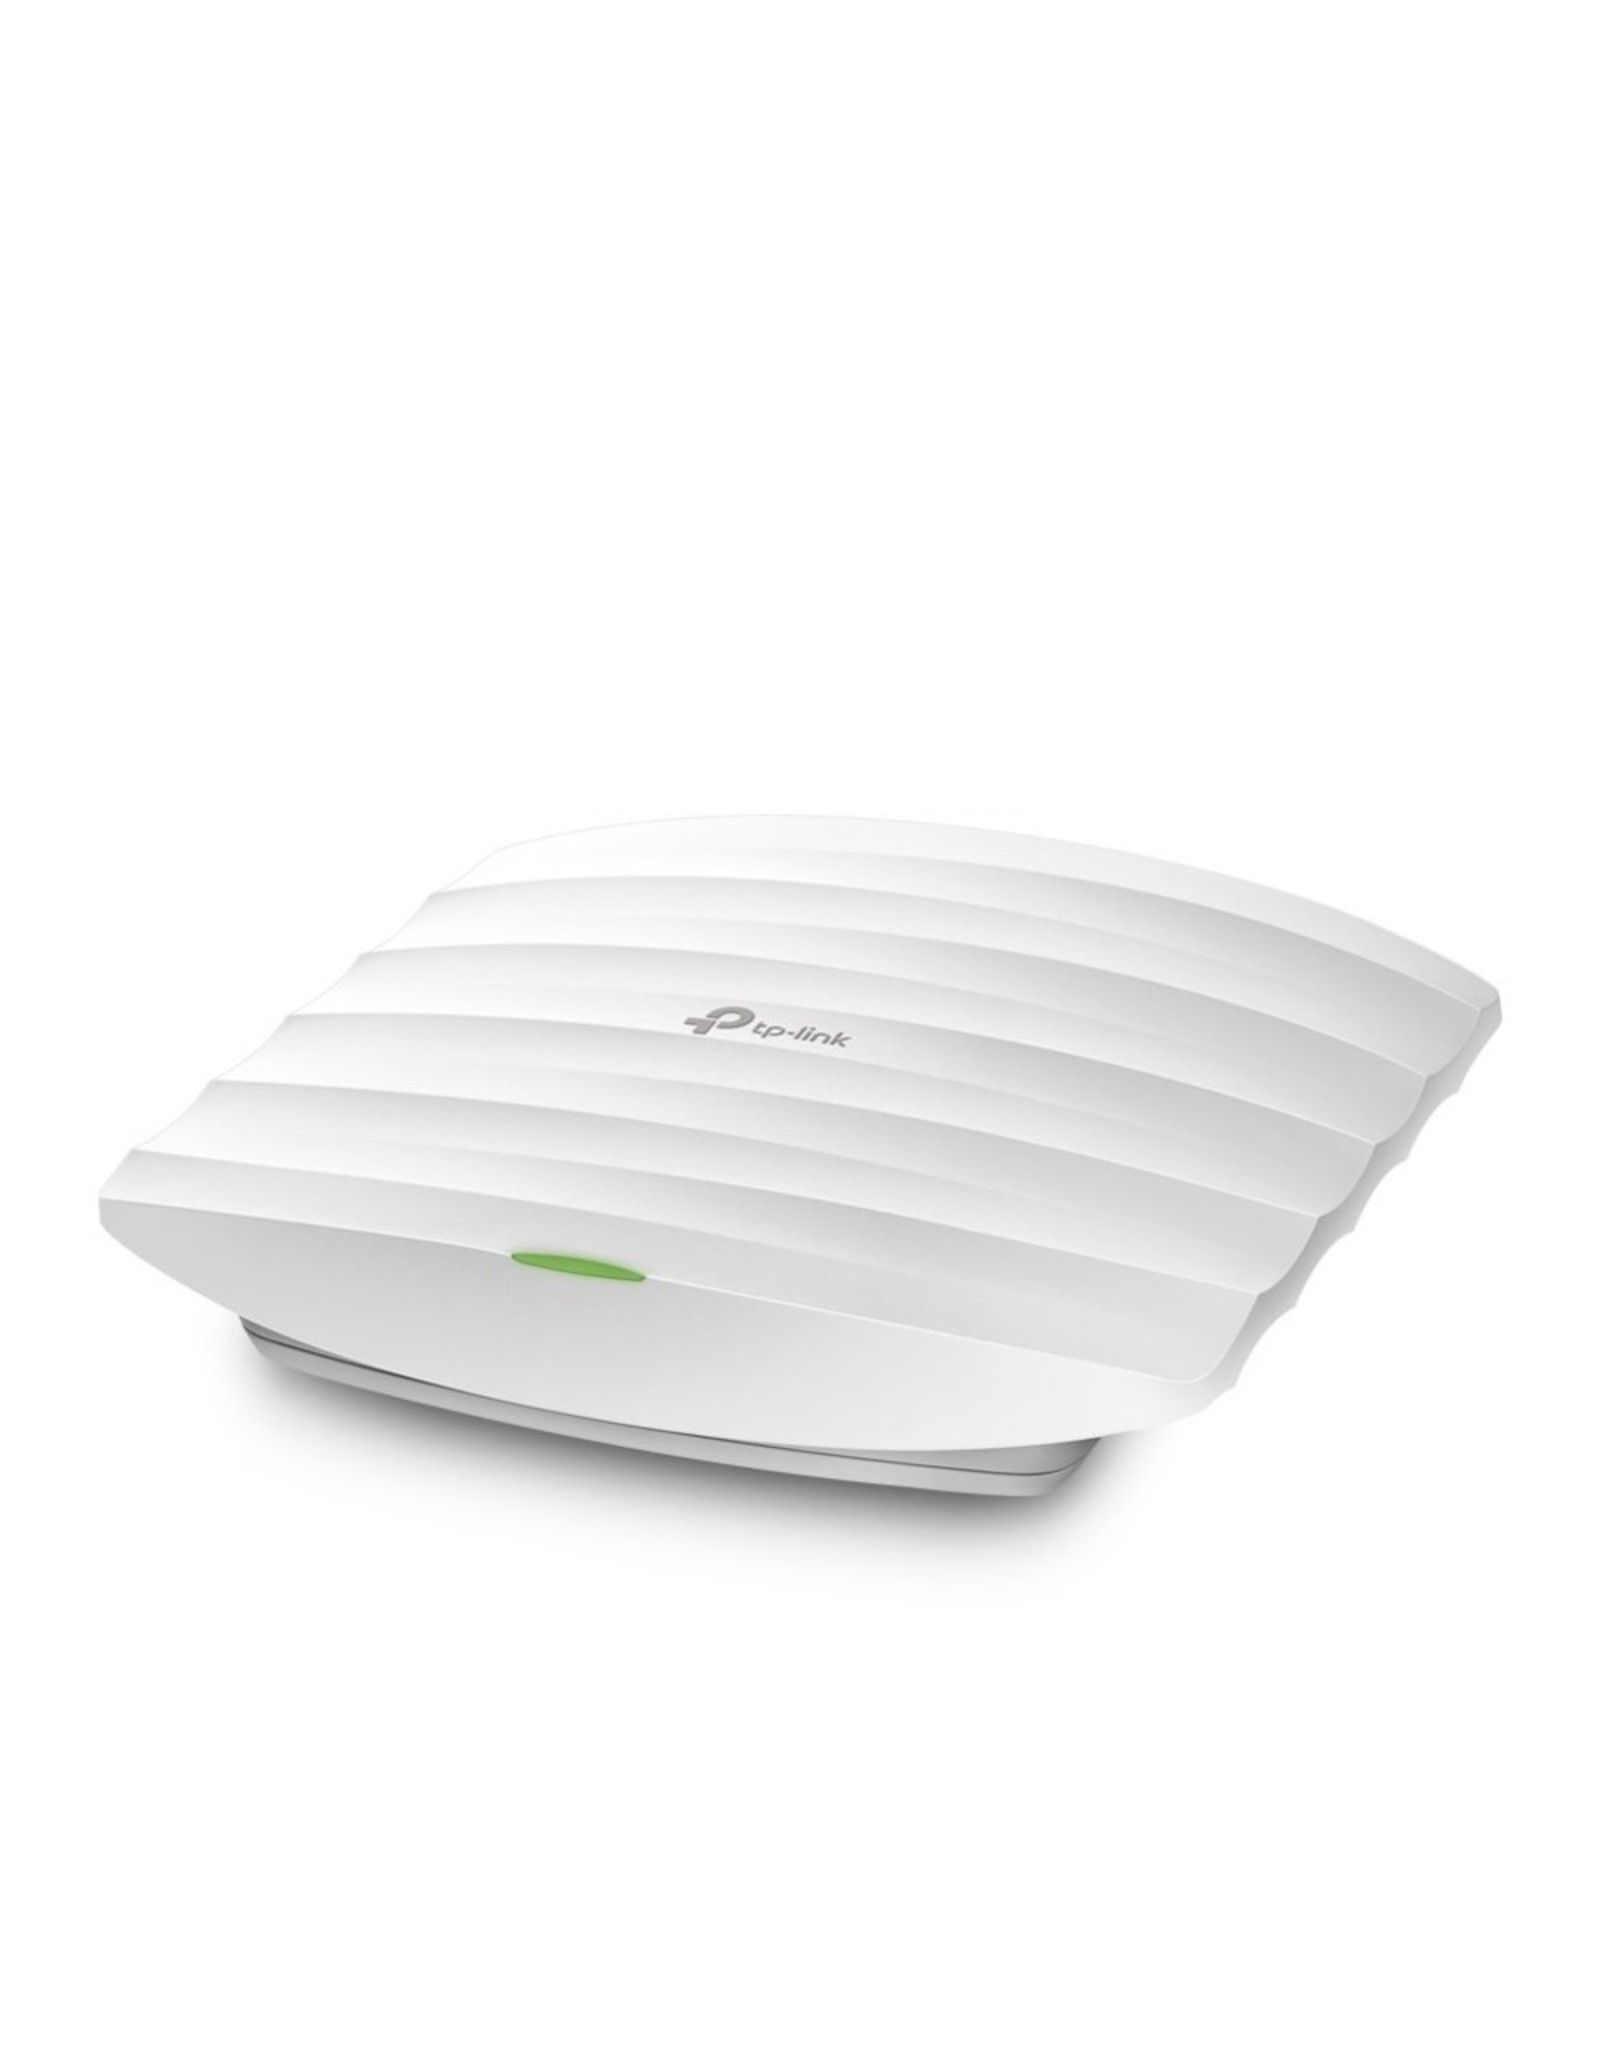 TP-Link EAP245 AccessPoint AC1750 / PoE /2.4 + 5GHz